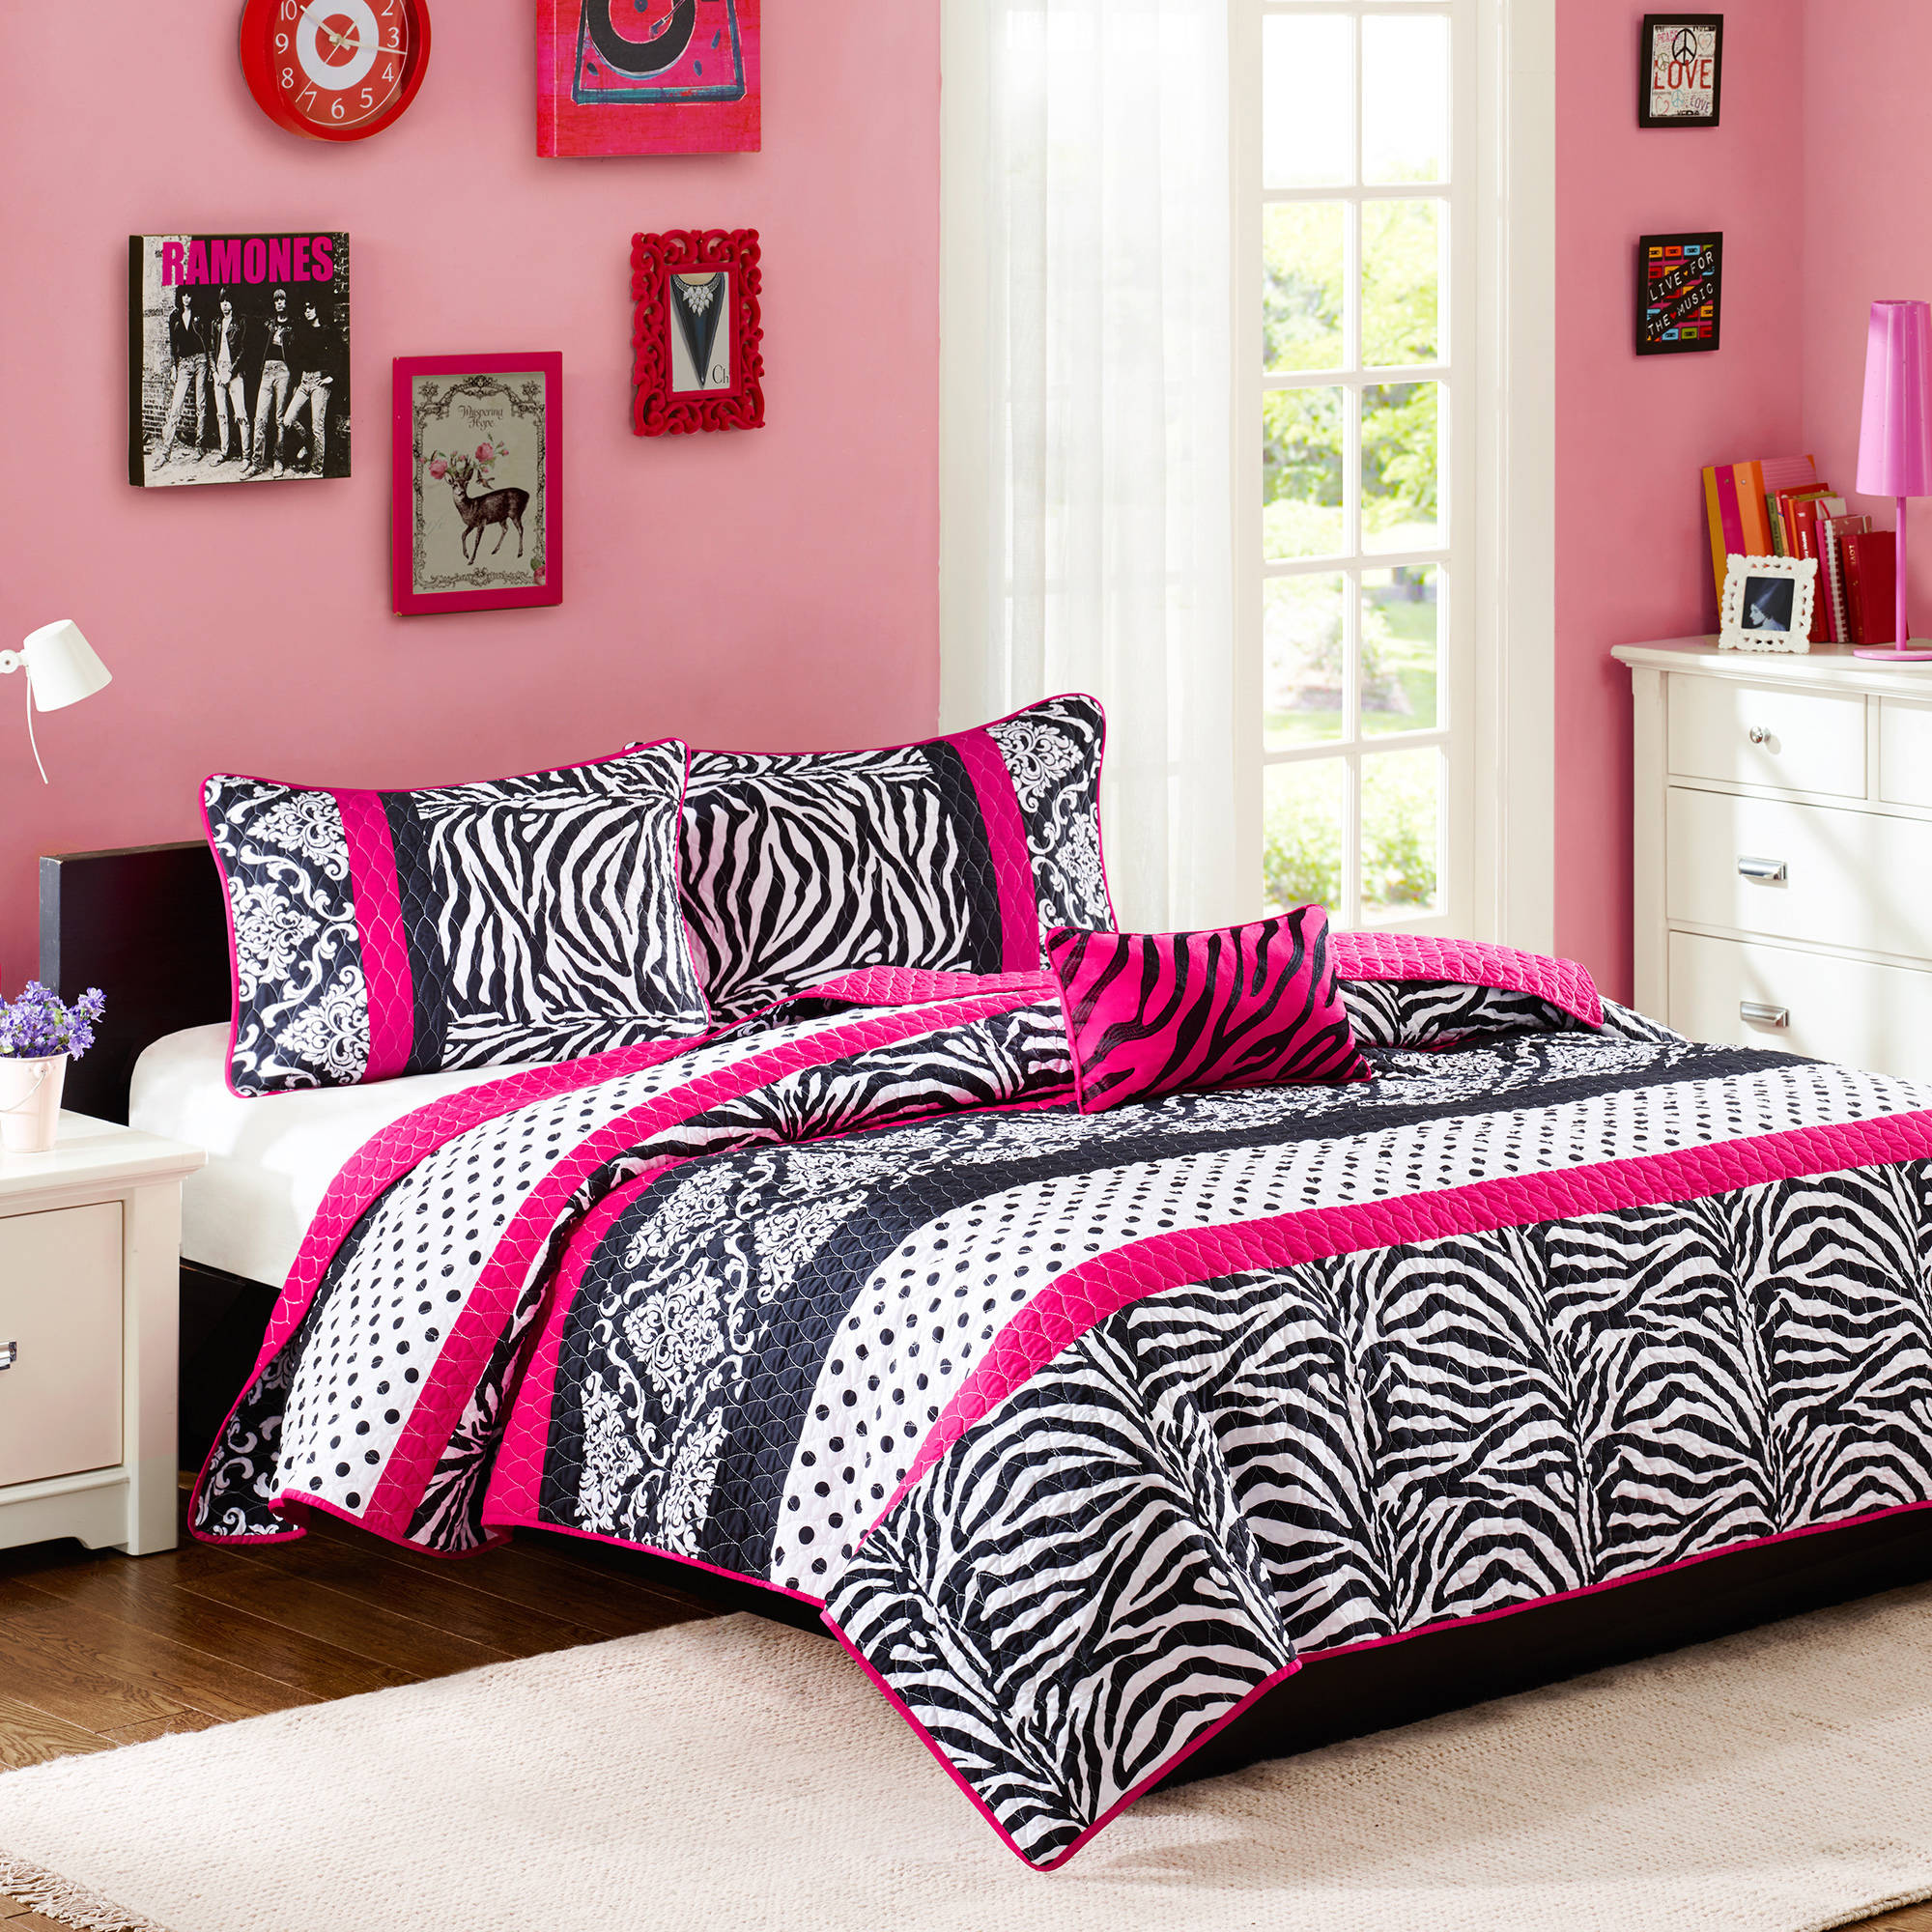 Home Essence Teen Leona Printed Coverlet Bedding Set